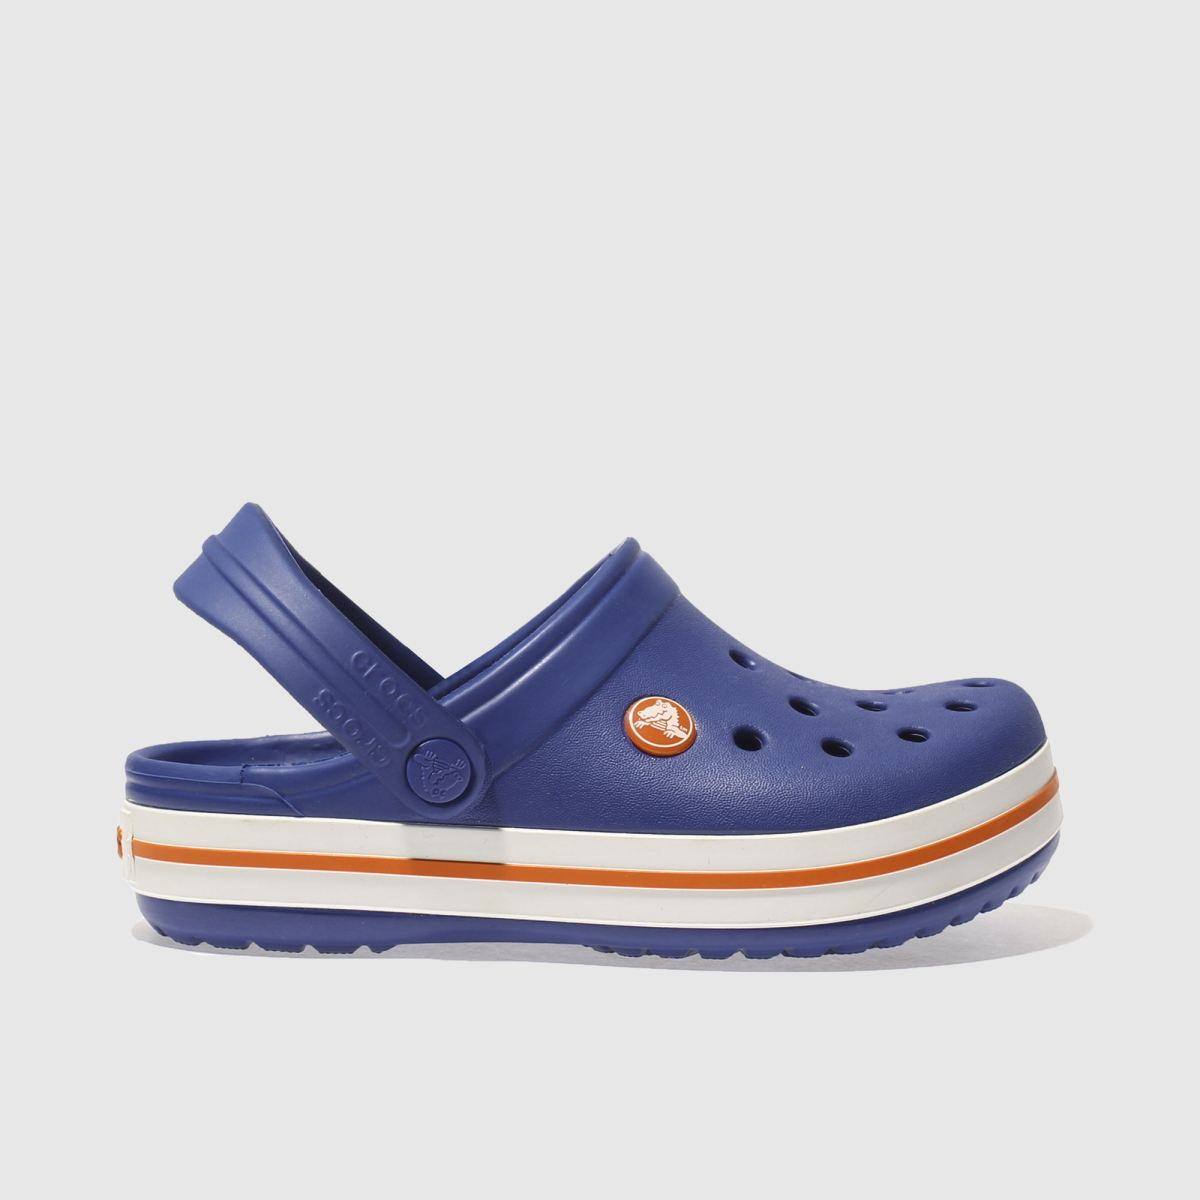 Crocs Blue Crocband Clog Trainers Junior